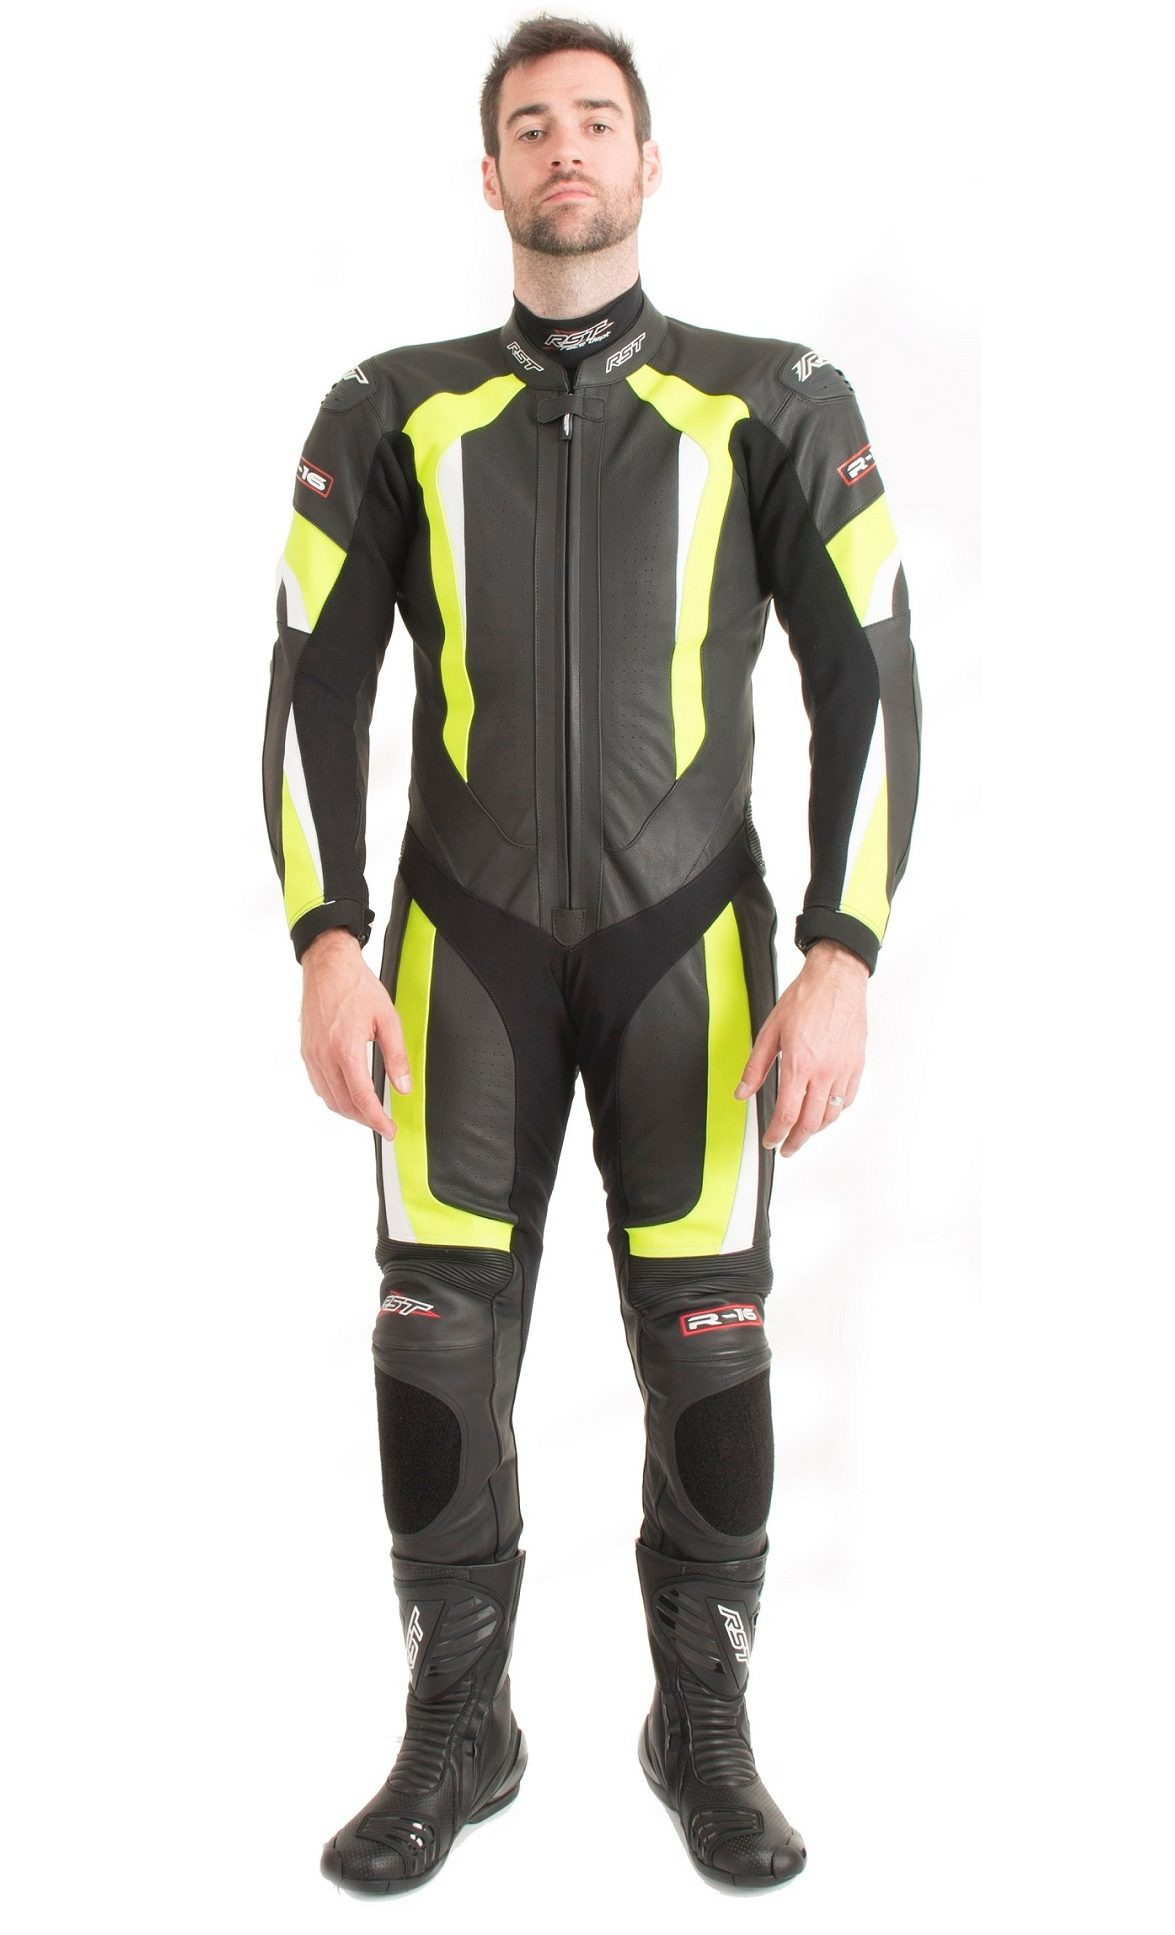 riding-suits-for-cycling-motorcycle-glossary-terminology-outfits-ensembles